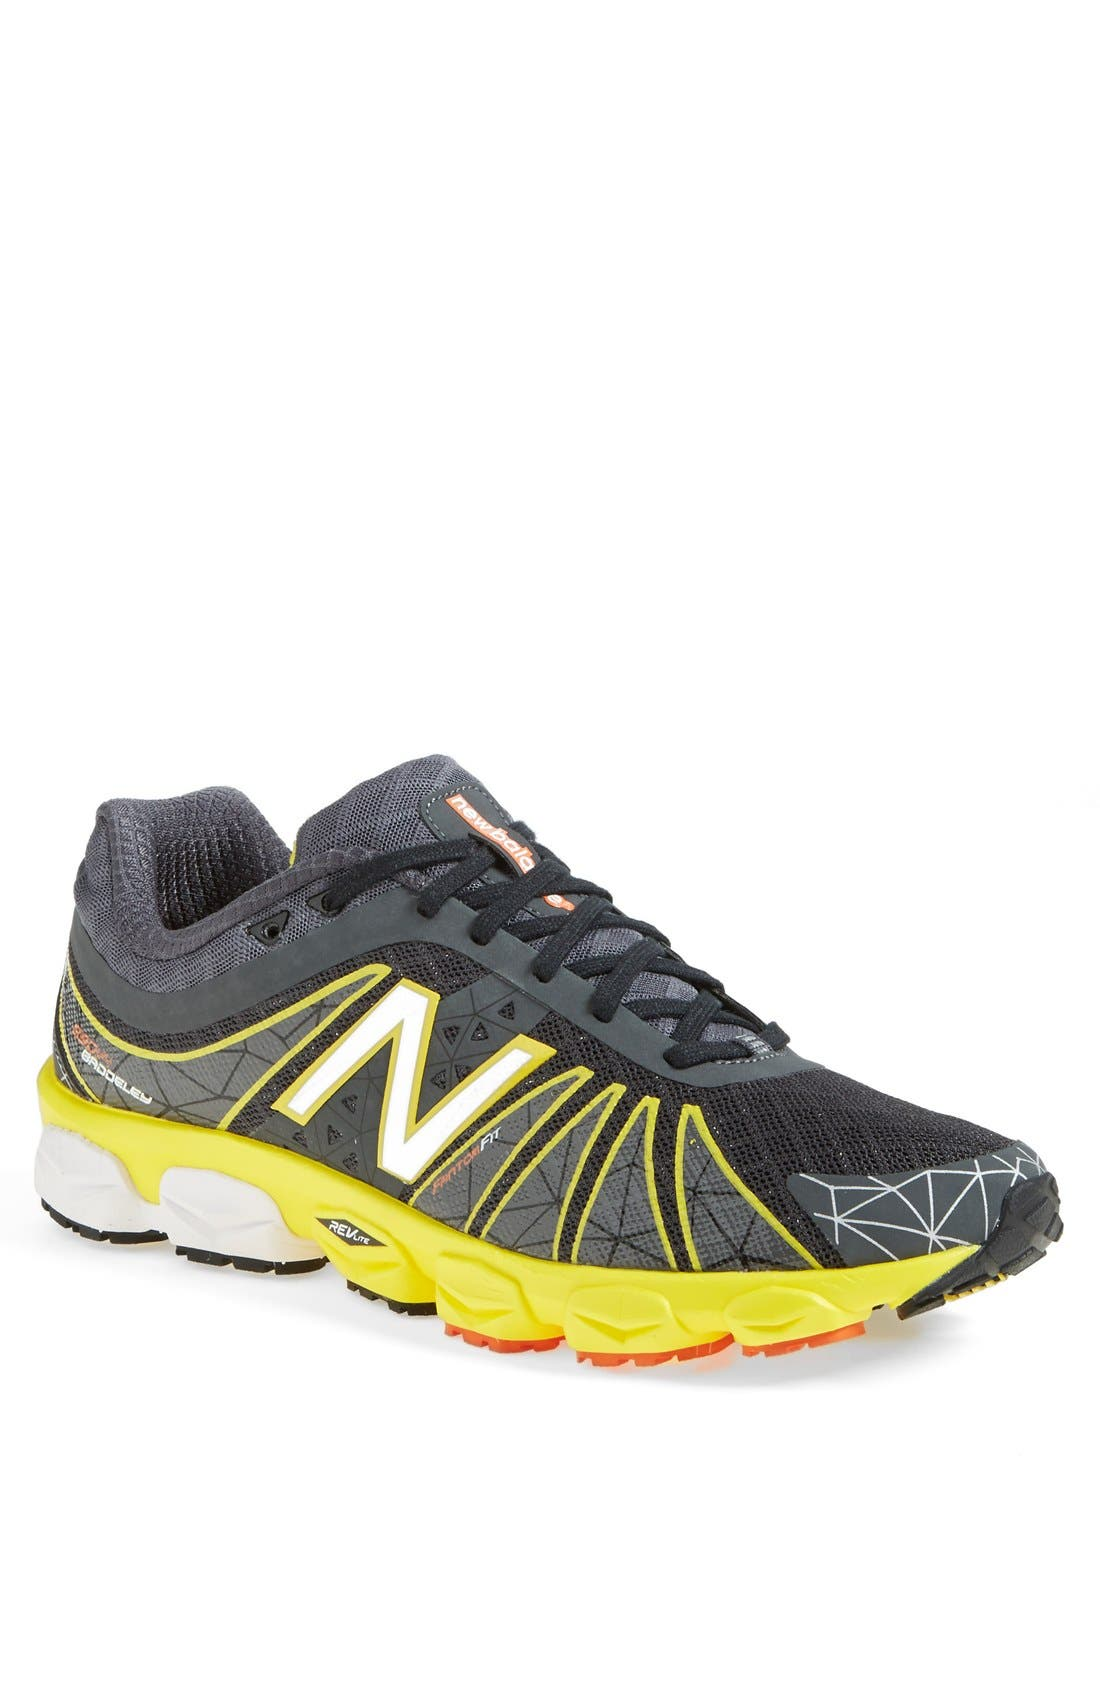 Main Image - New Balance '890v4' Running Shoe (Men)